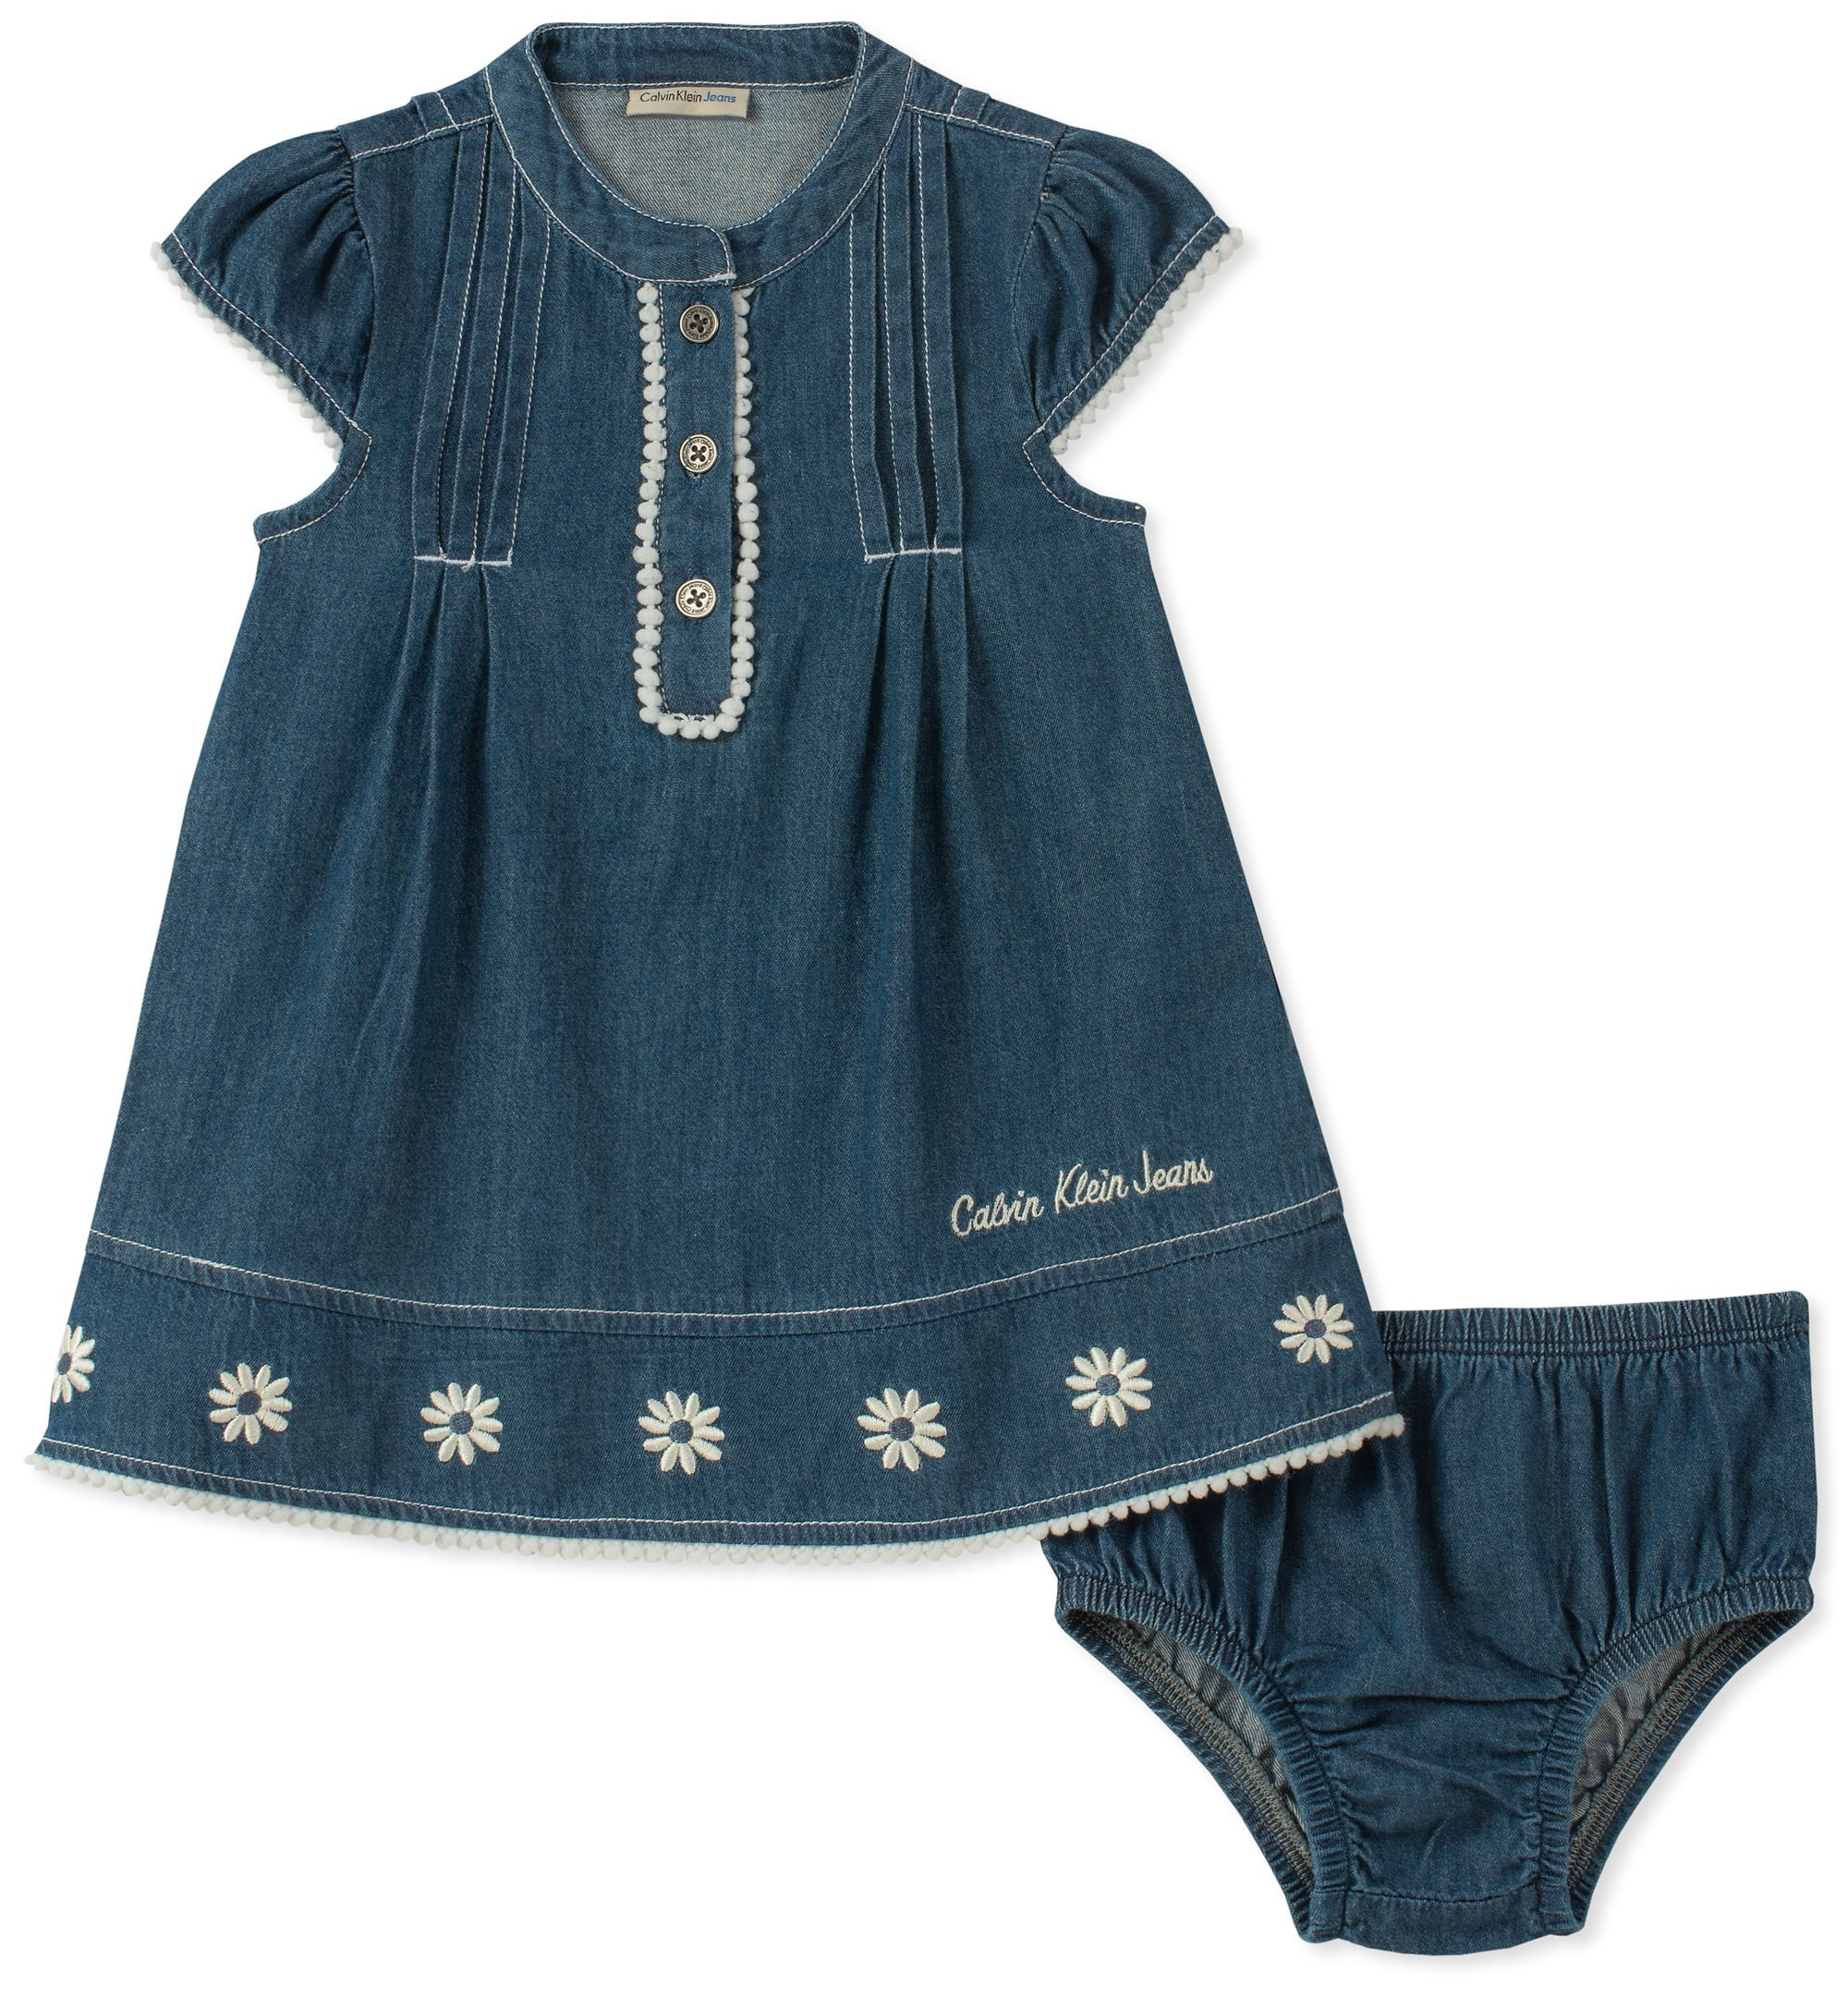 Calvin Klein Baby Girls Dress with Panty Set, Dark